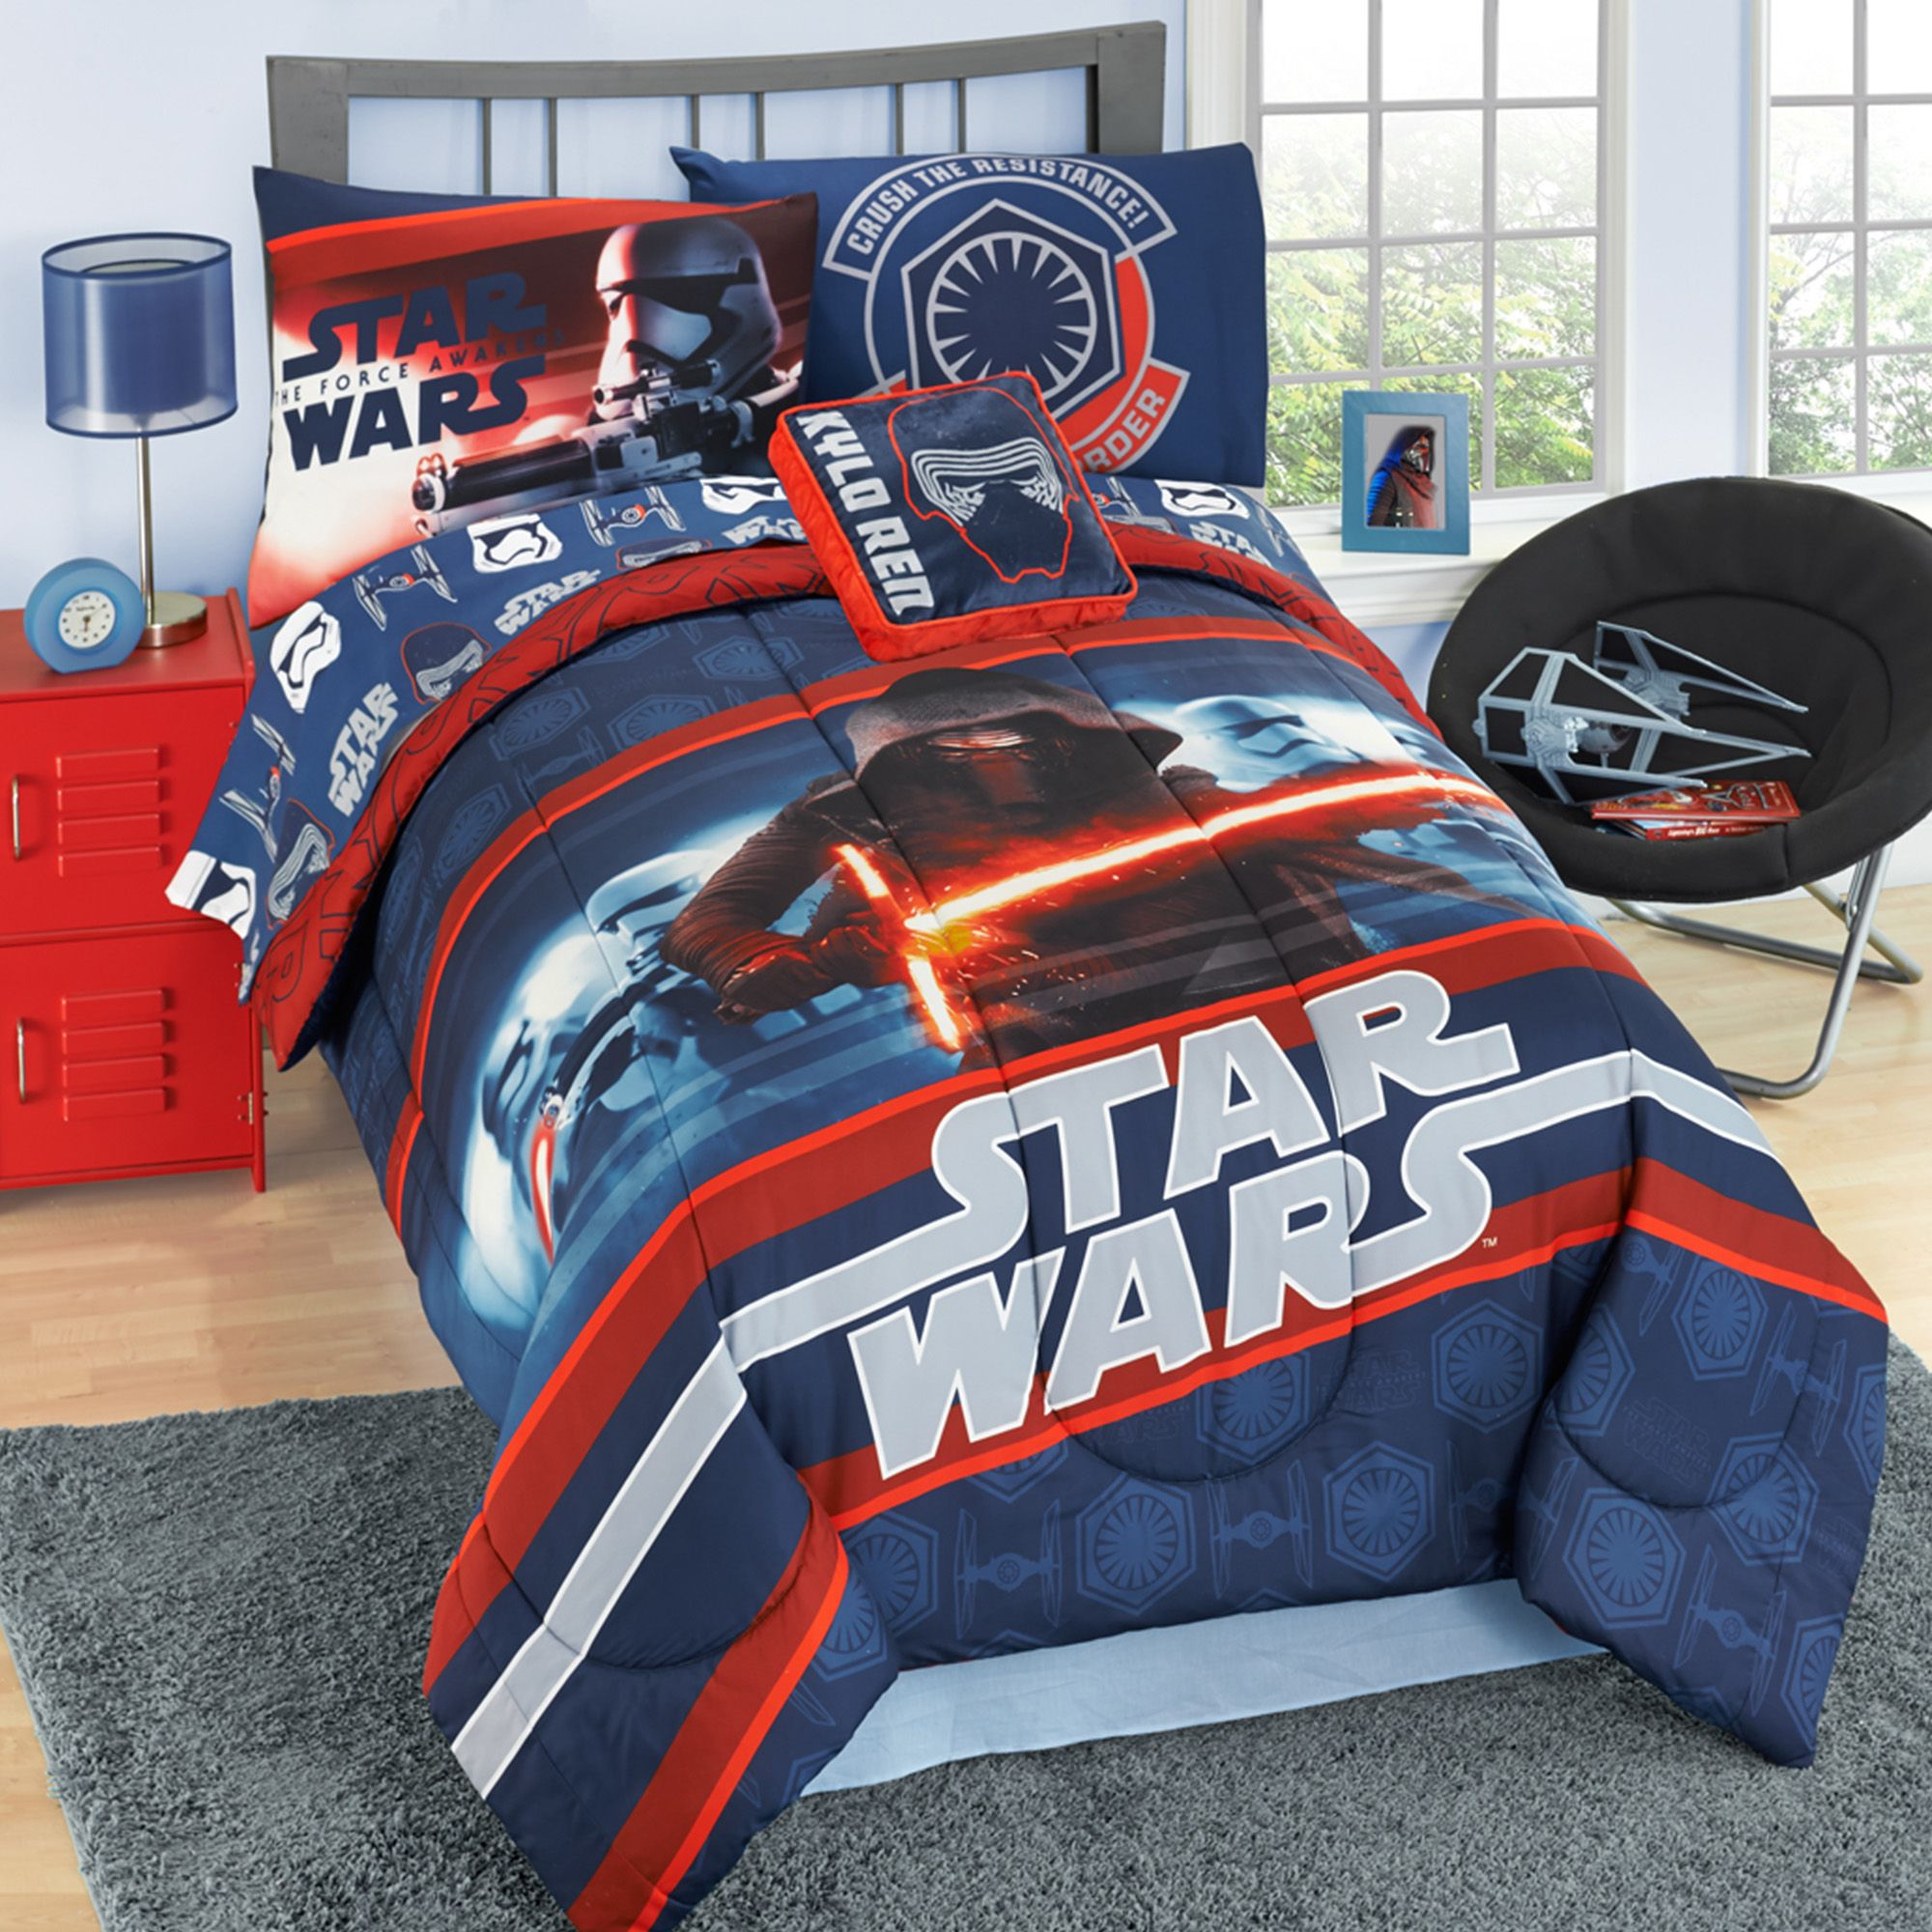 Star Wars EP7 4 Piece Twin Bed in a Bag